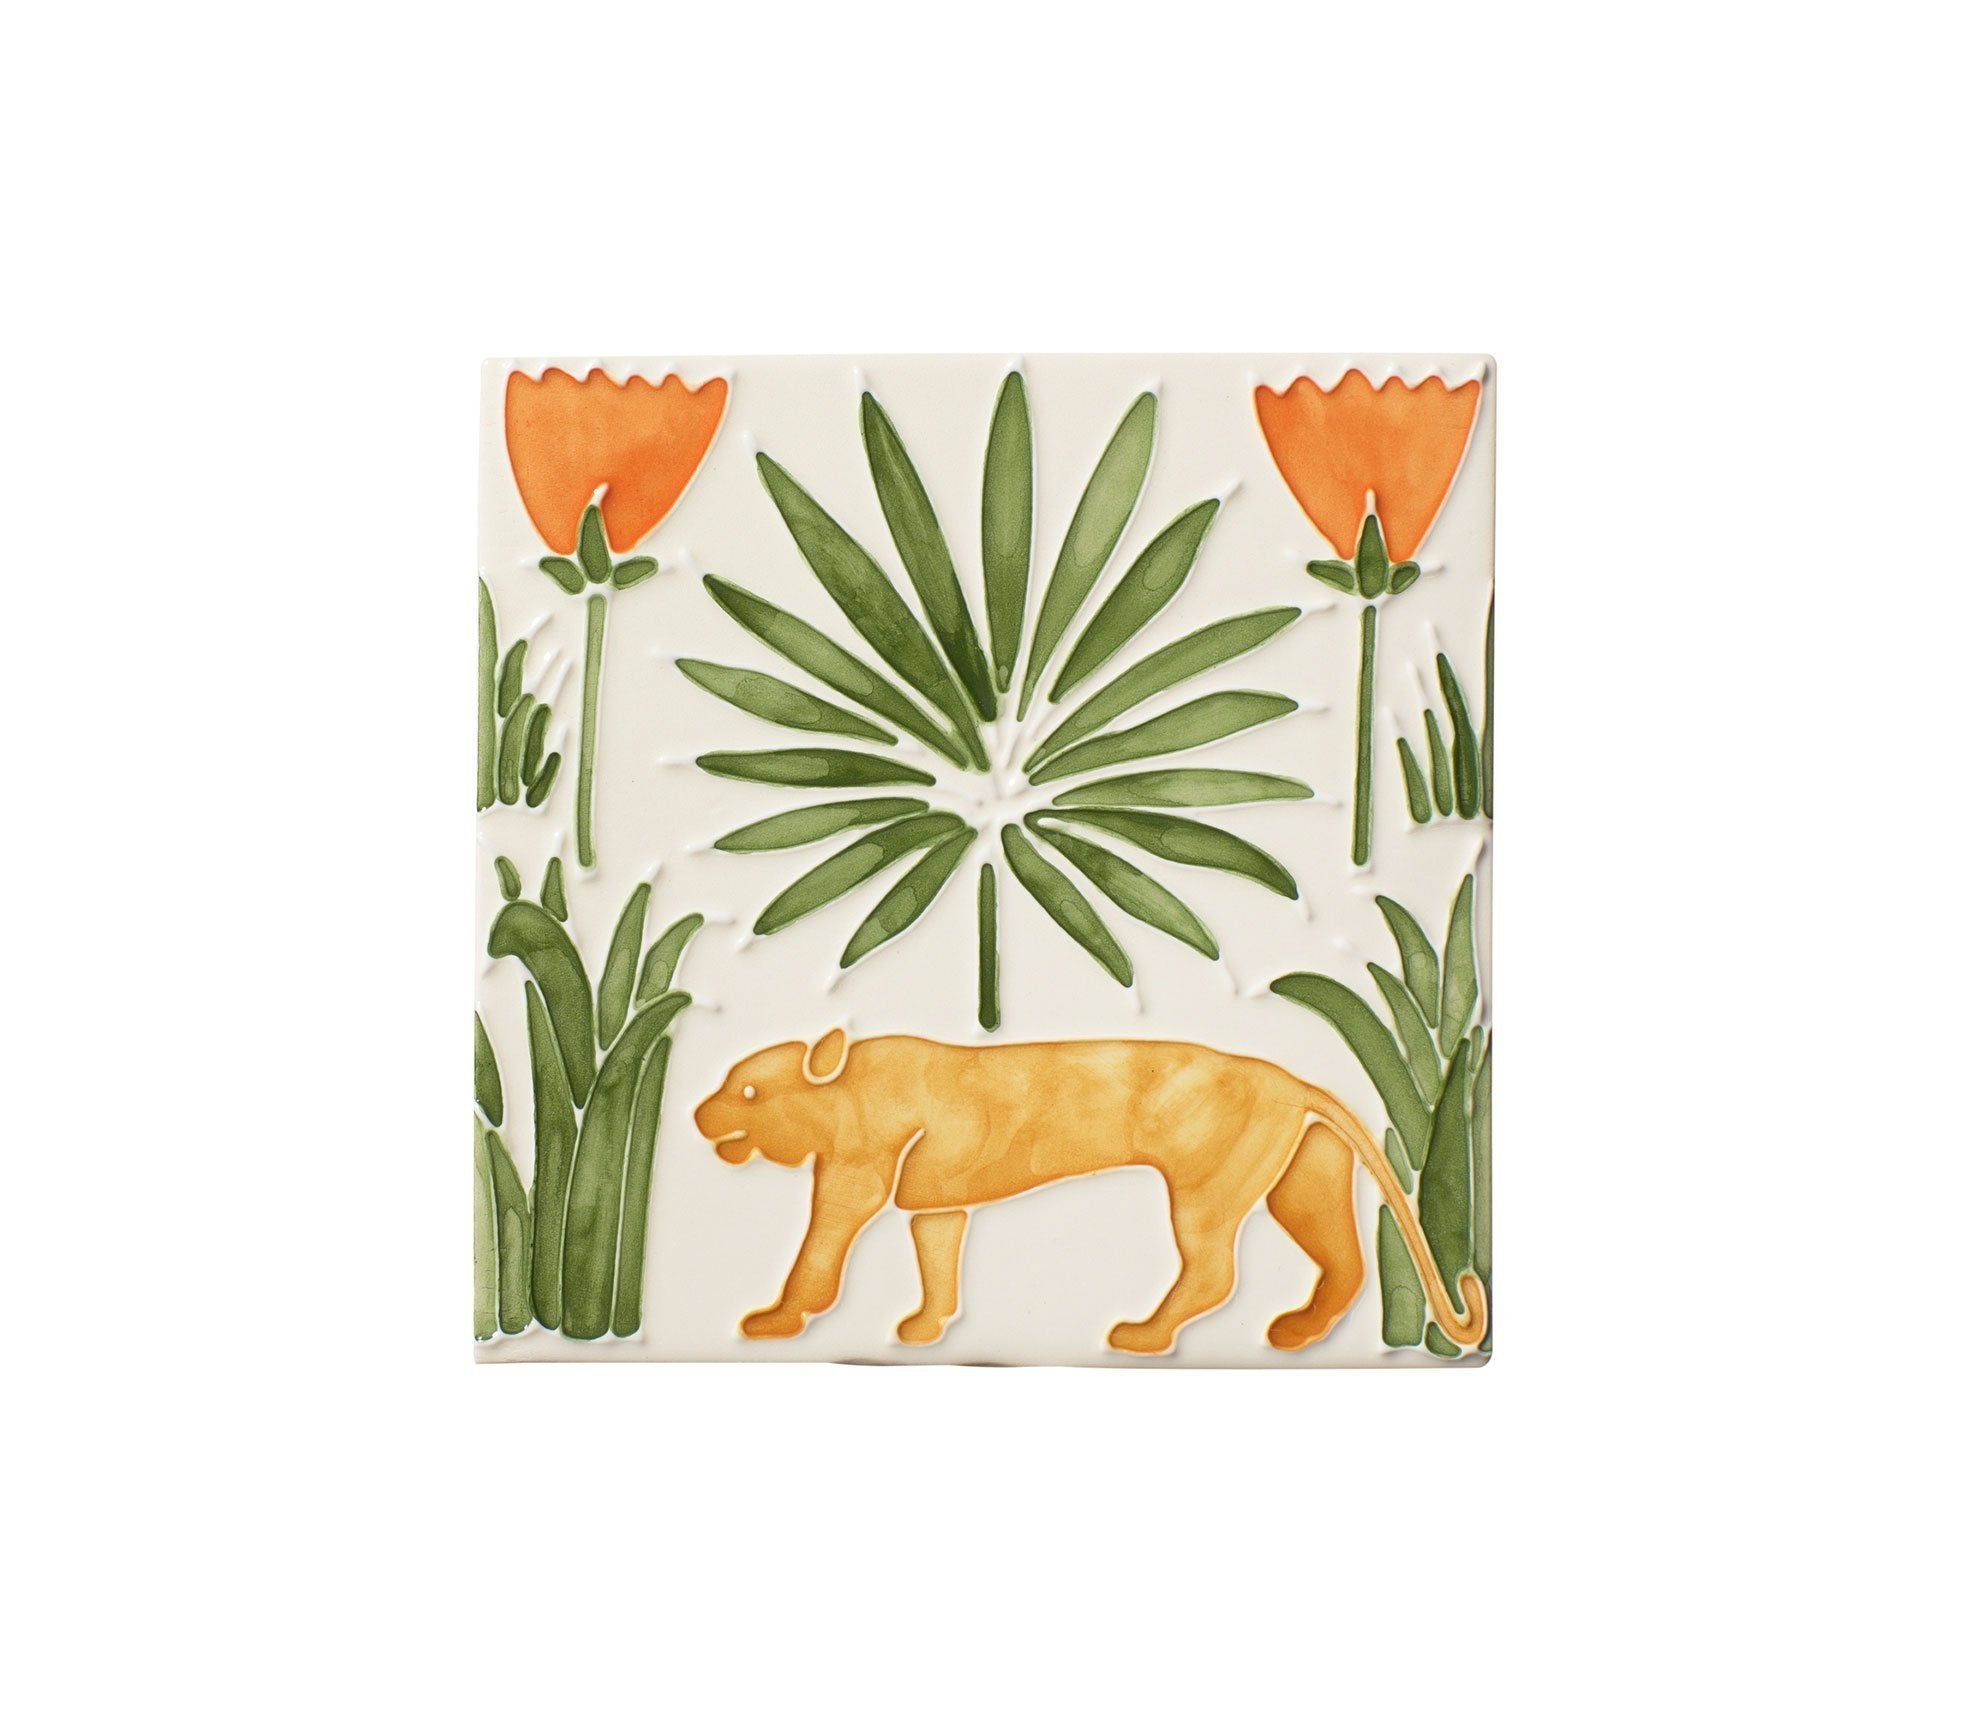 Lioness & Palms Tiles Product Image 3